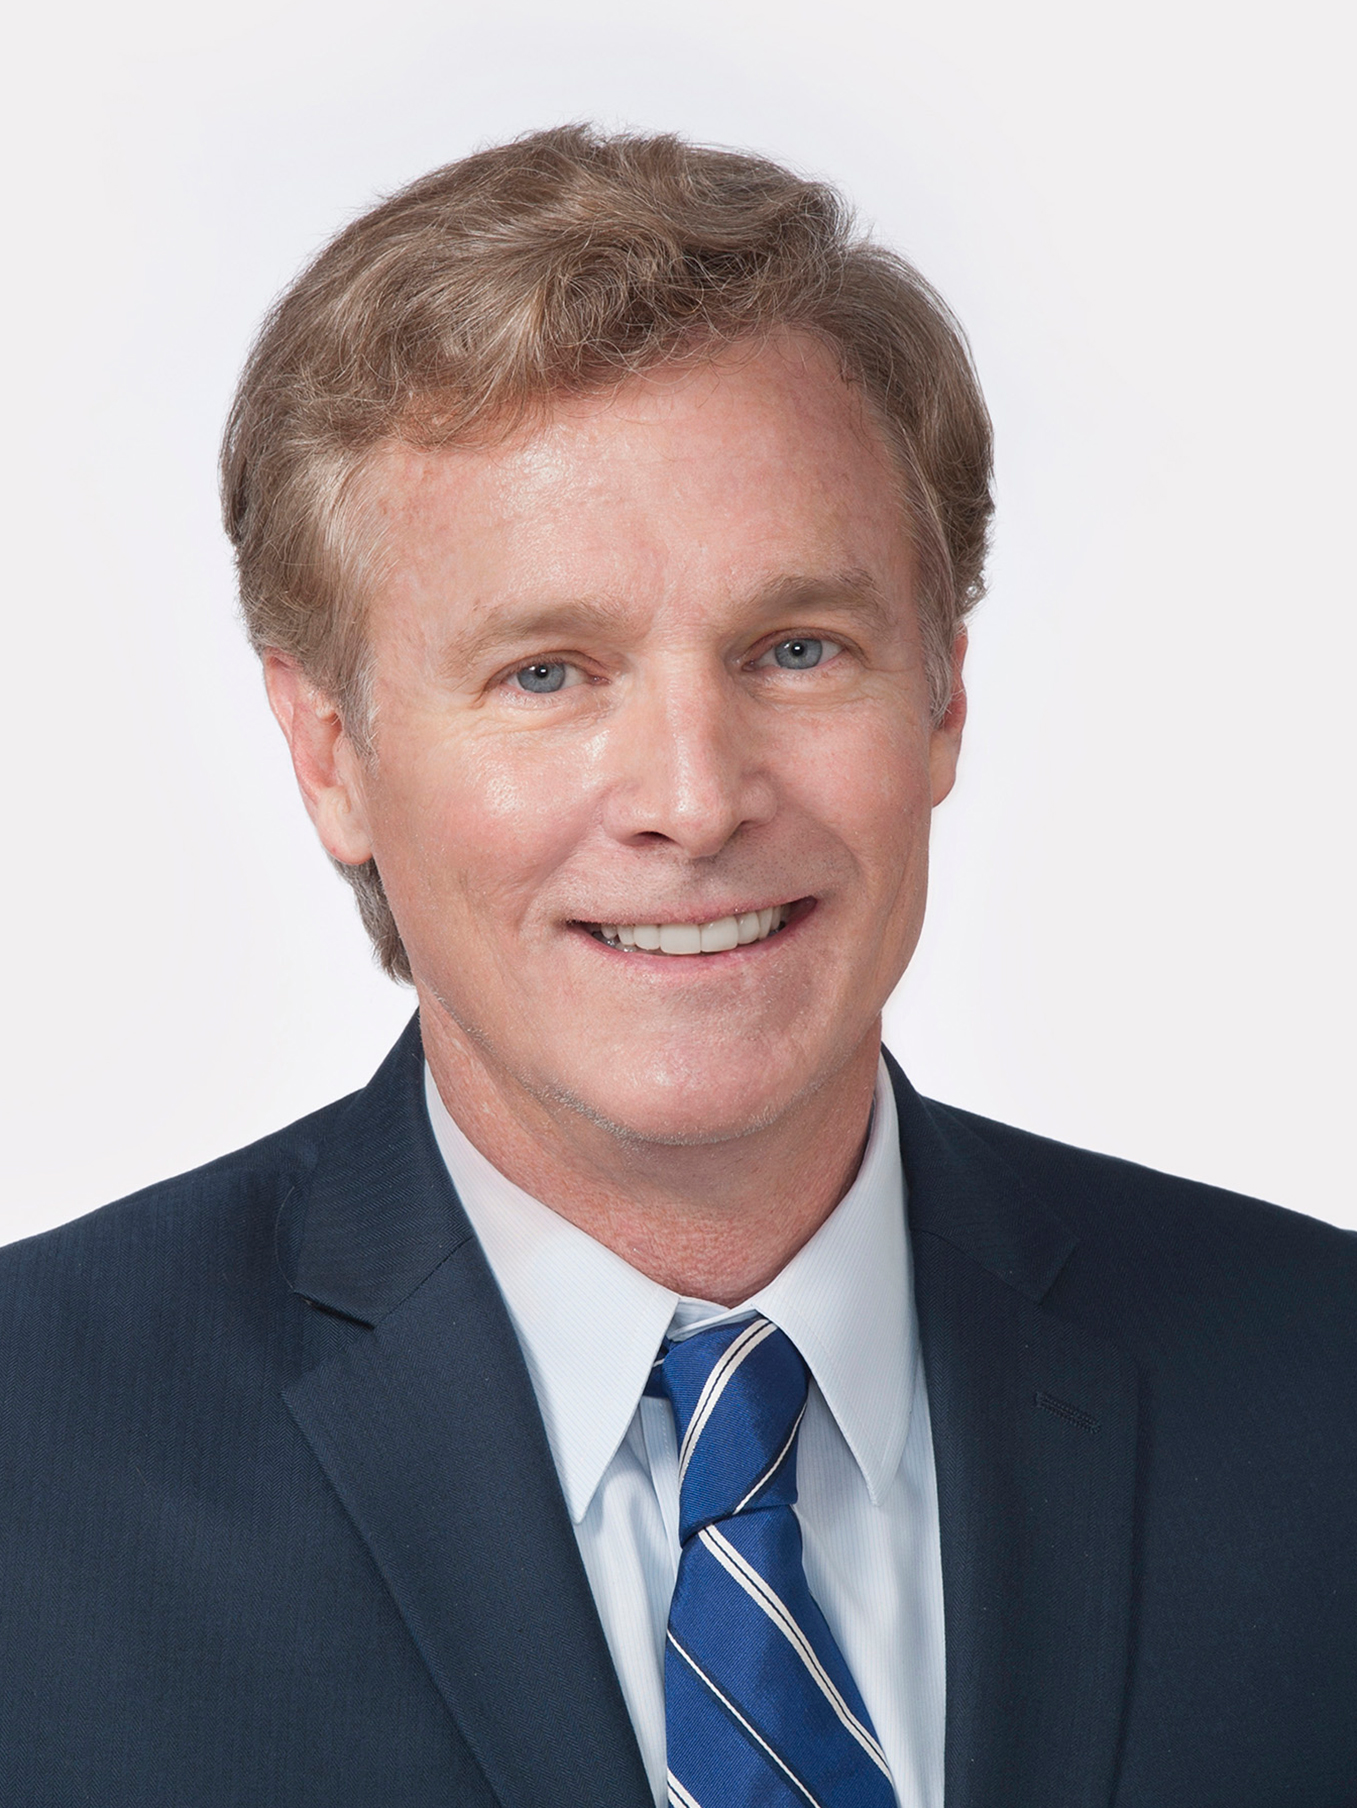 Donald L. Hagan, CFA, Partner, Co-founder, and Chief Investment Strategist for Day Hagan Mutual Funds in Sarasota, FL.